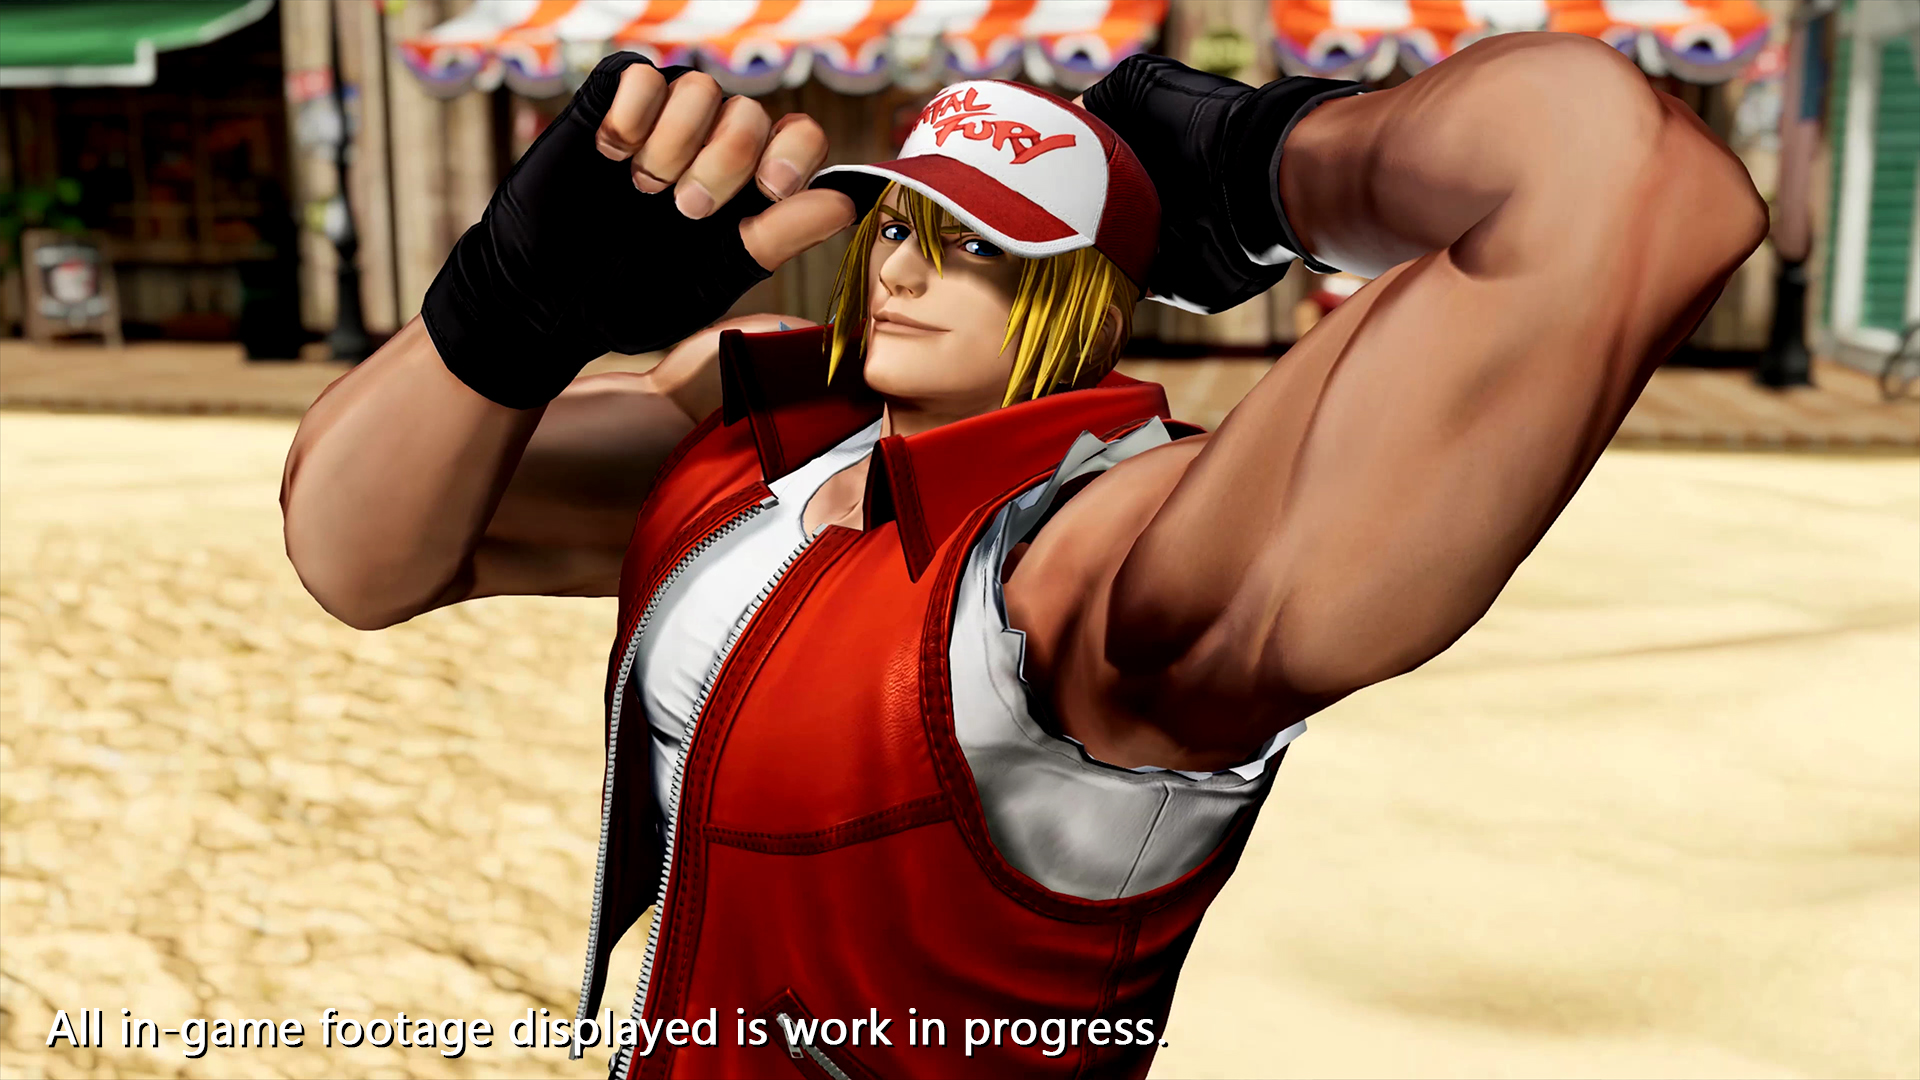 Terry Bogard reveal 2 out of 6 image gallery